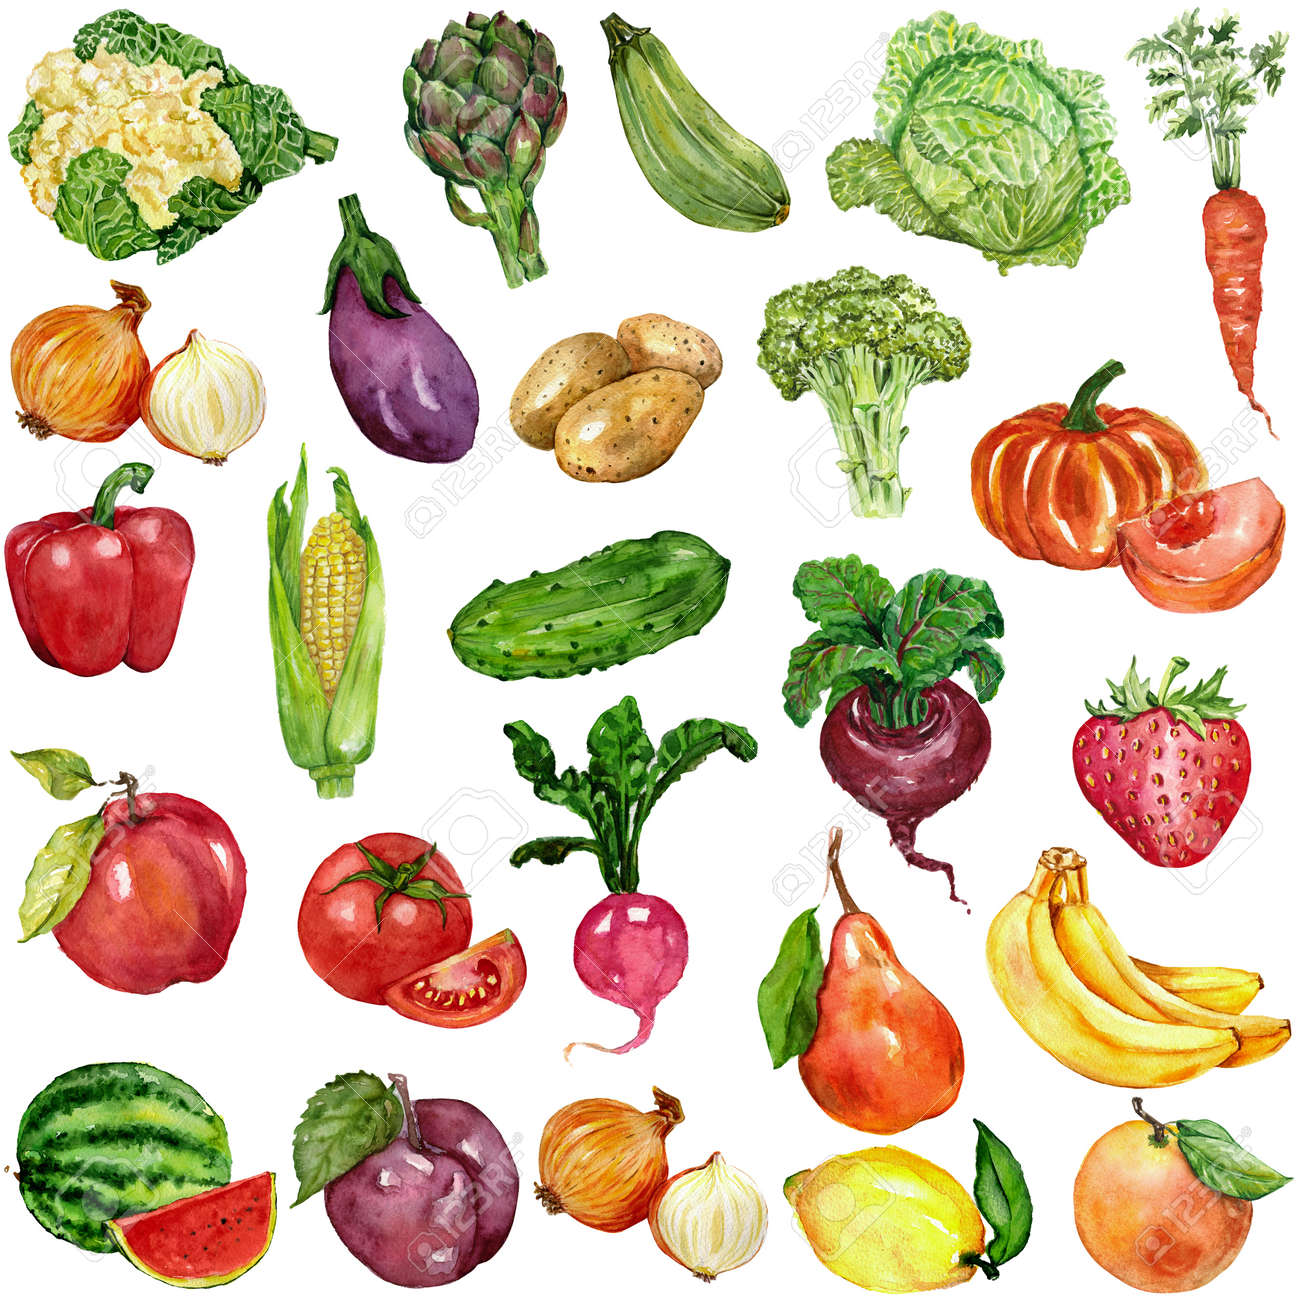 Watercolor set with fruits and vegetables Hand drawn image - 60351764